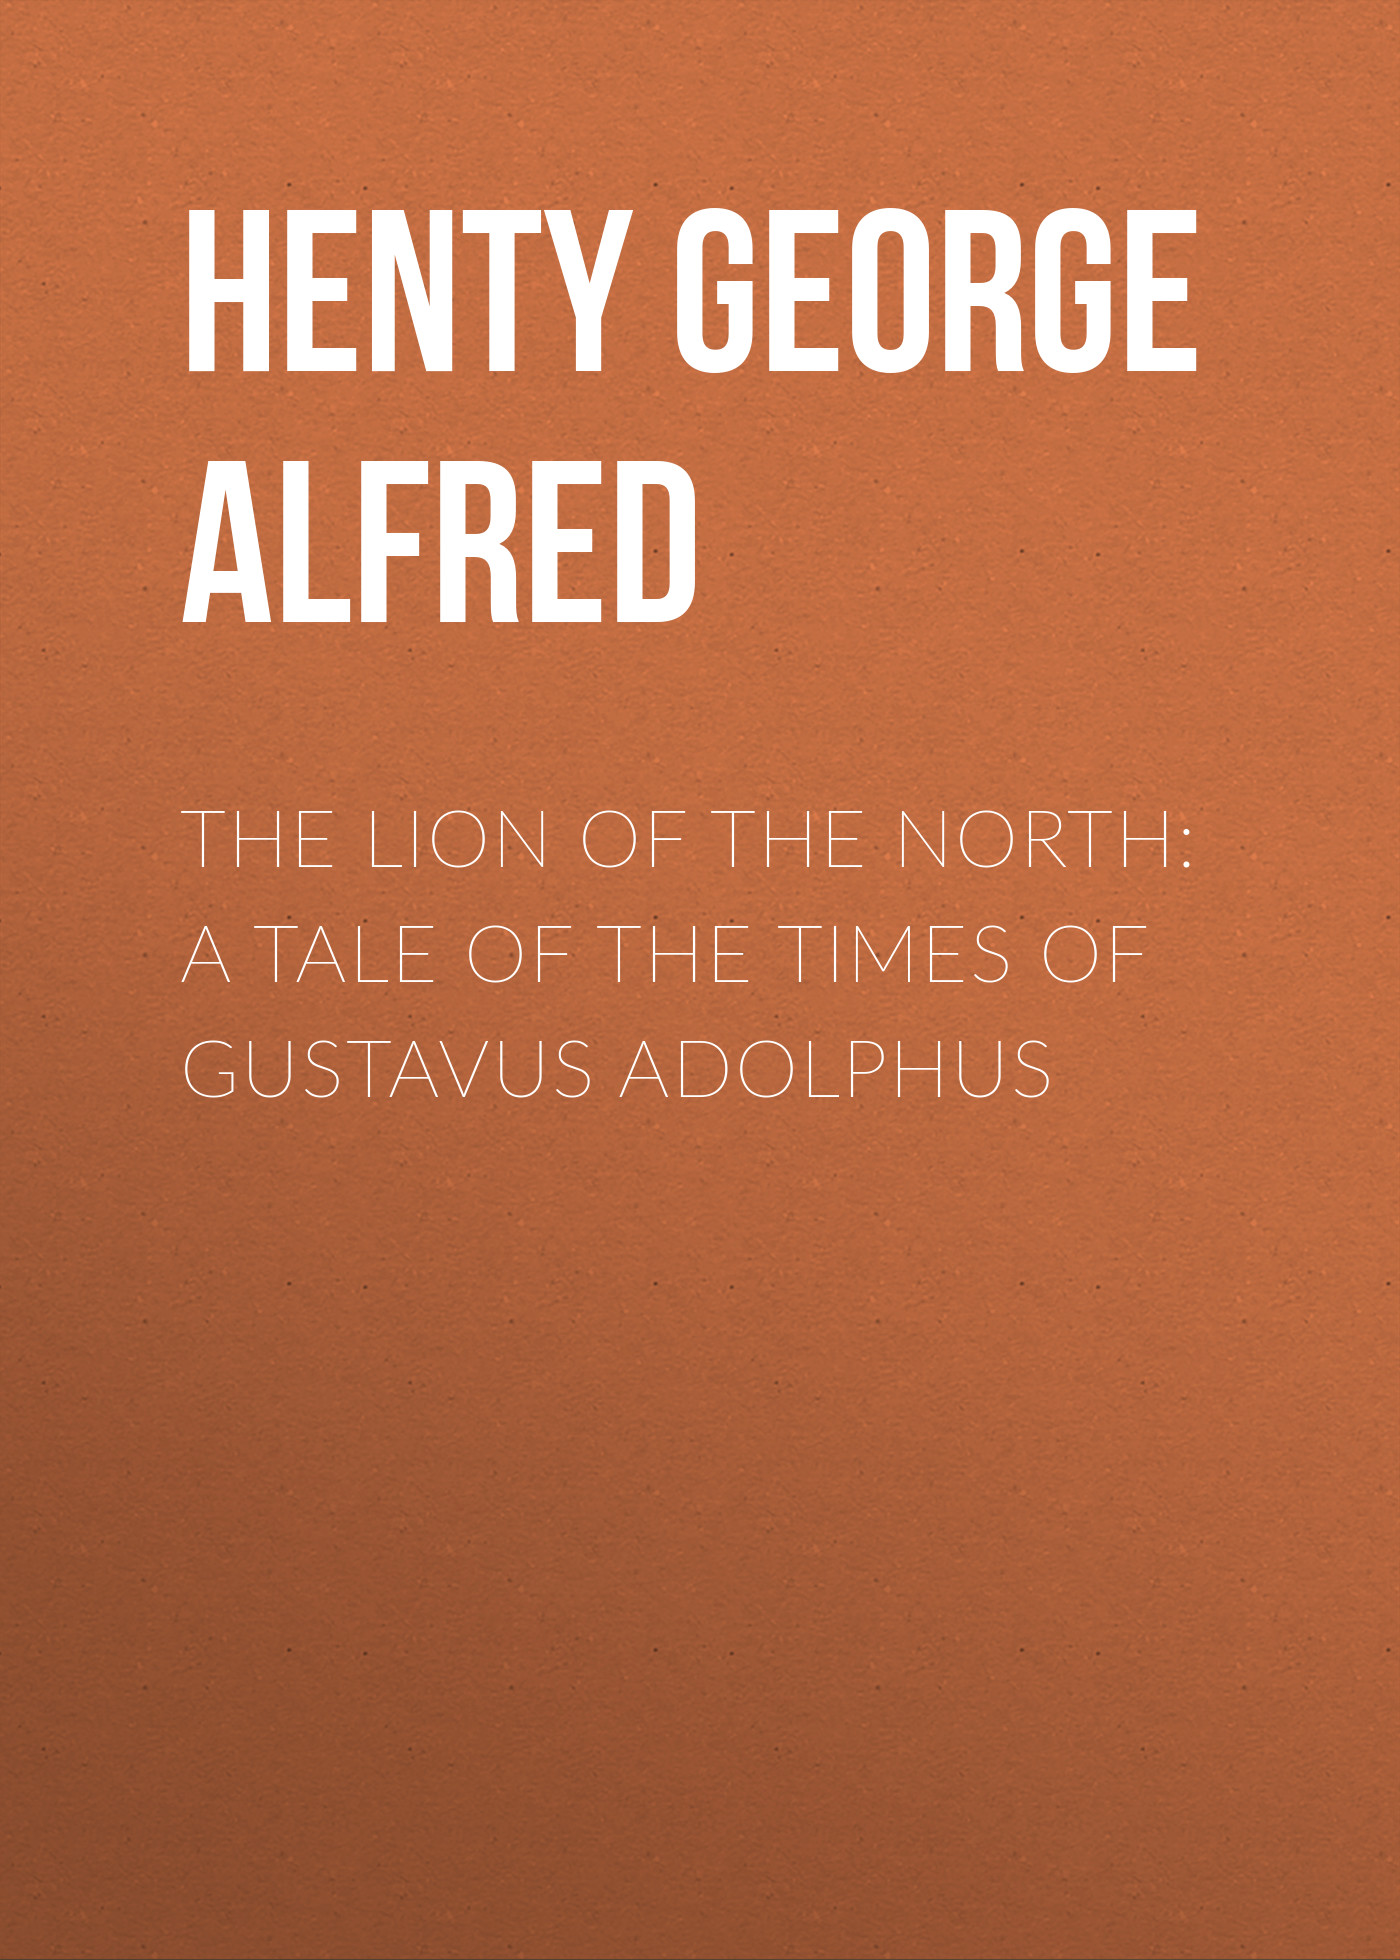 все цены на Henty George Alfred The Lion of the North: A Tale of the Times of Gustavus Adolphus онлайн